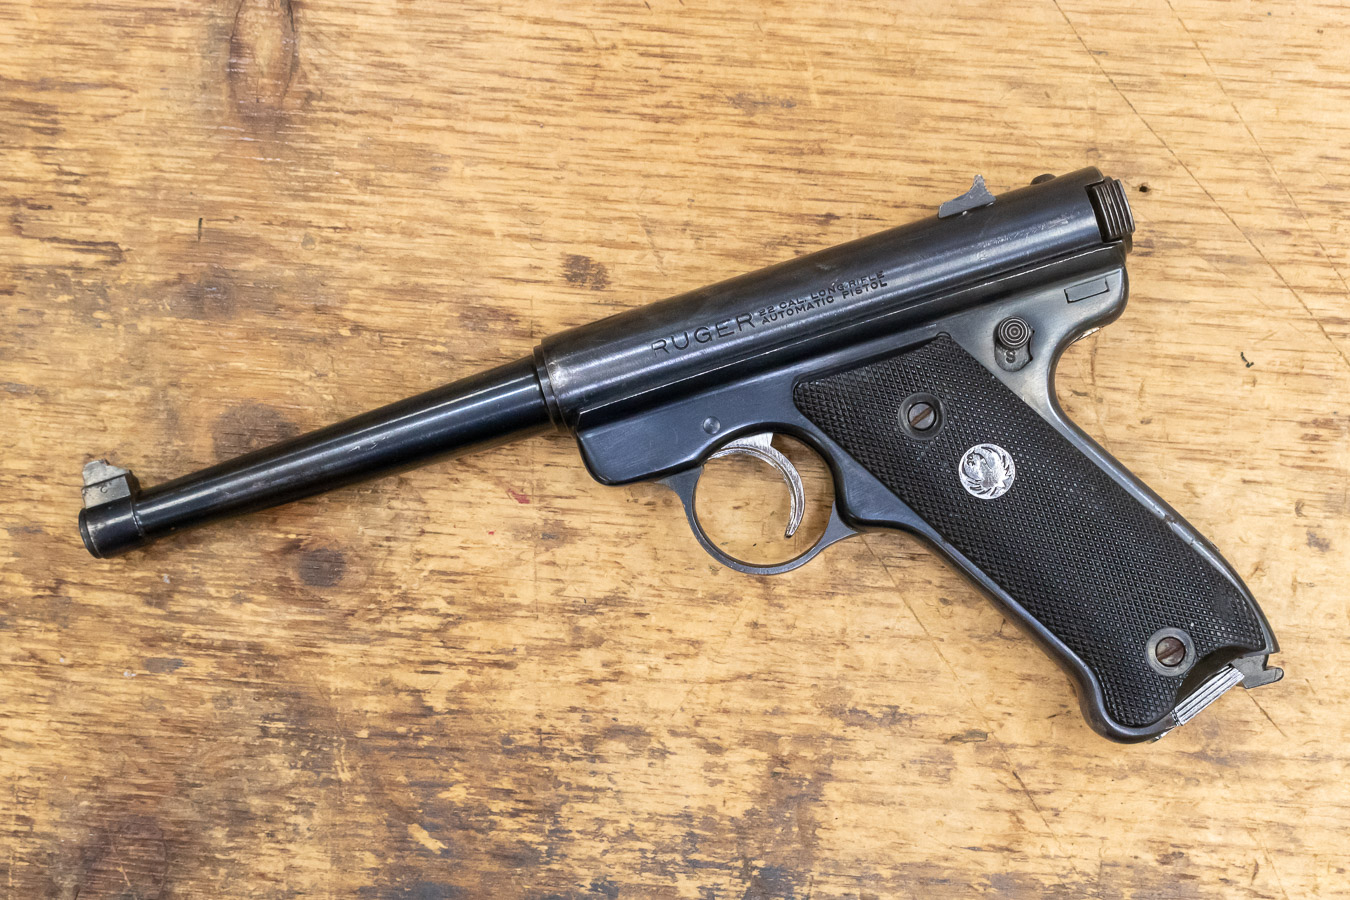 No. 23 Best Selling: RUGER STANDARD 22LR (MFG. DATE 1965)